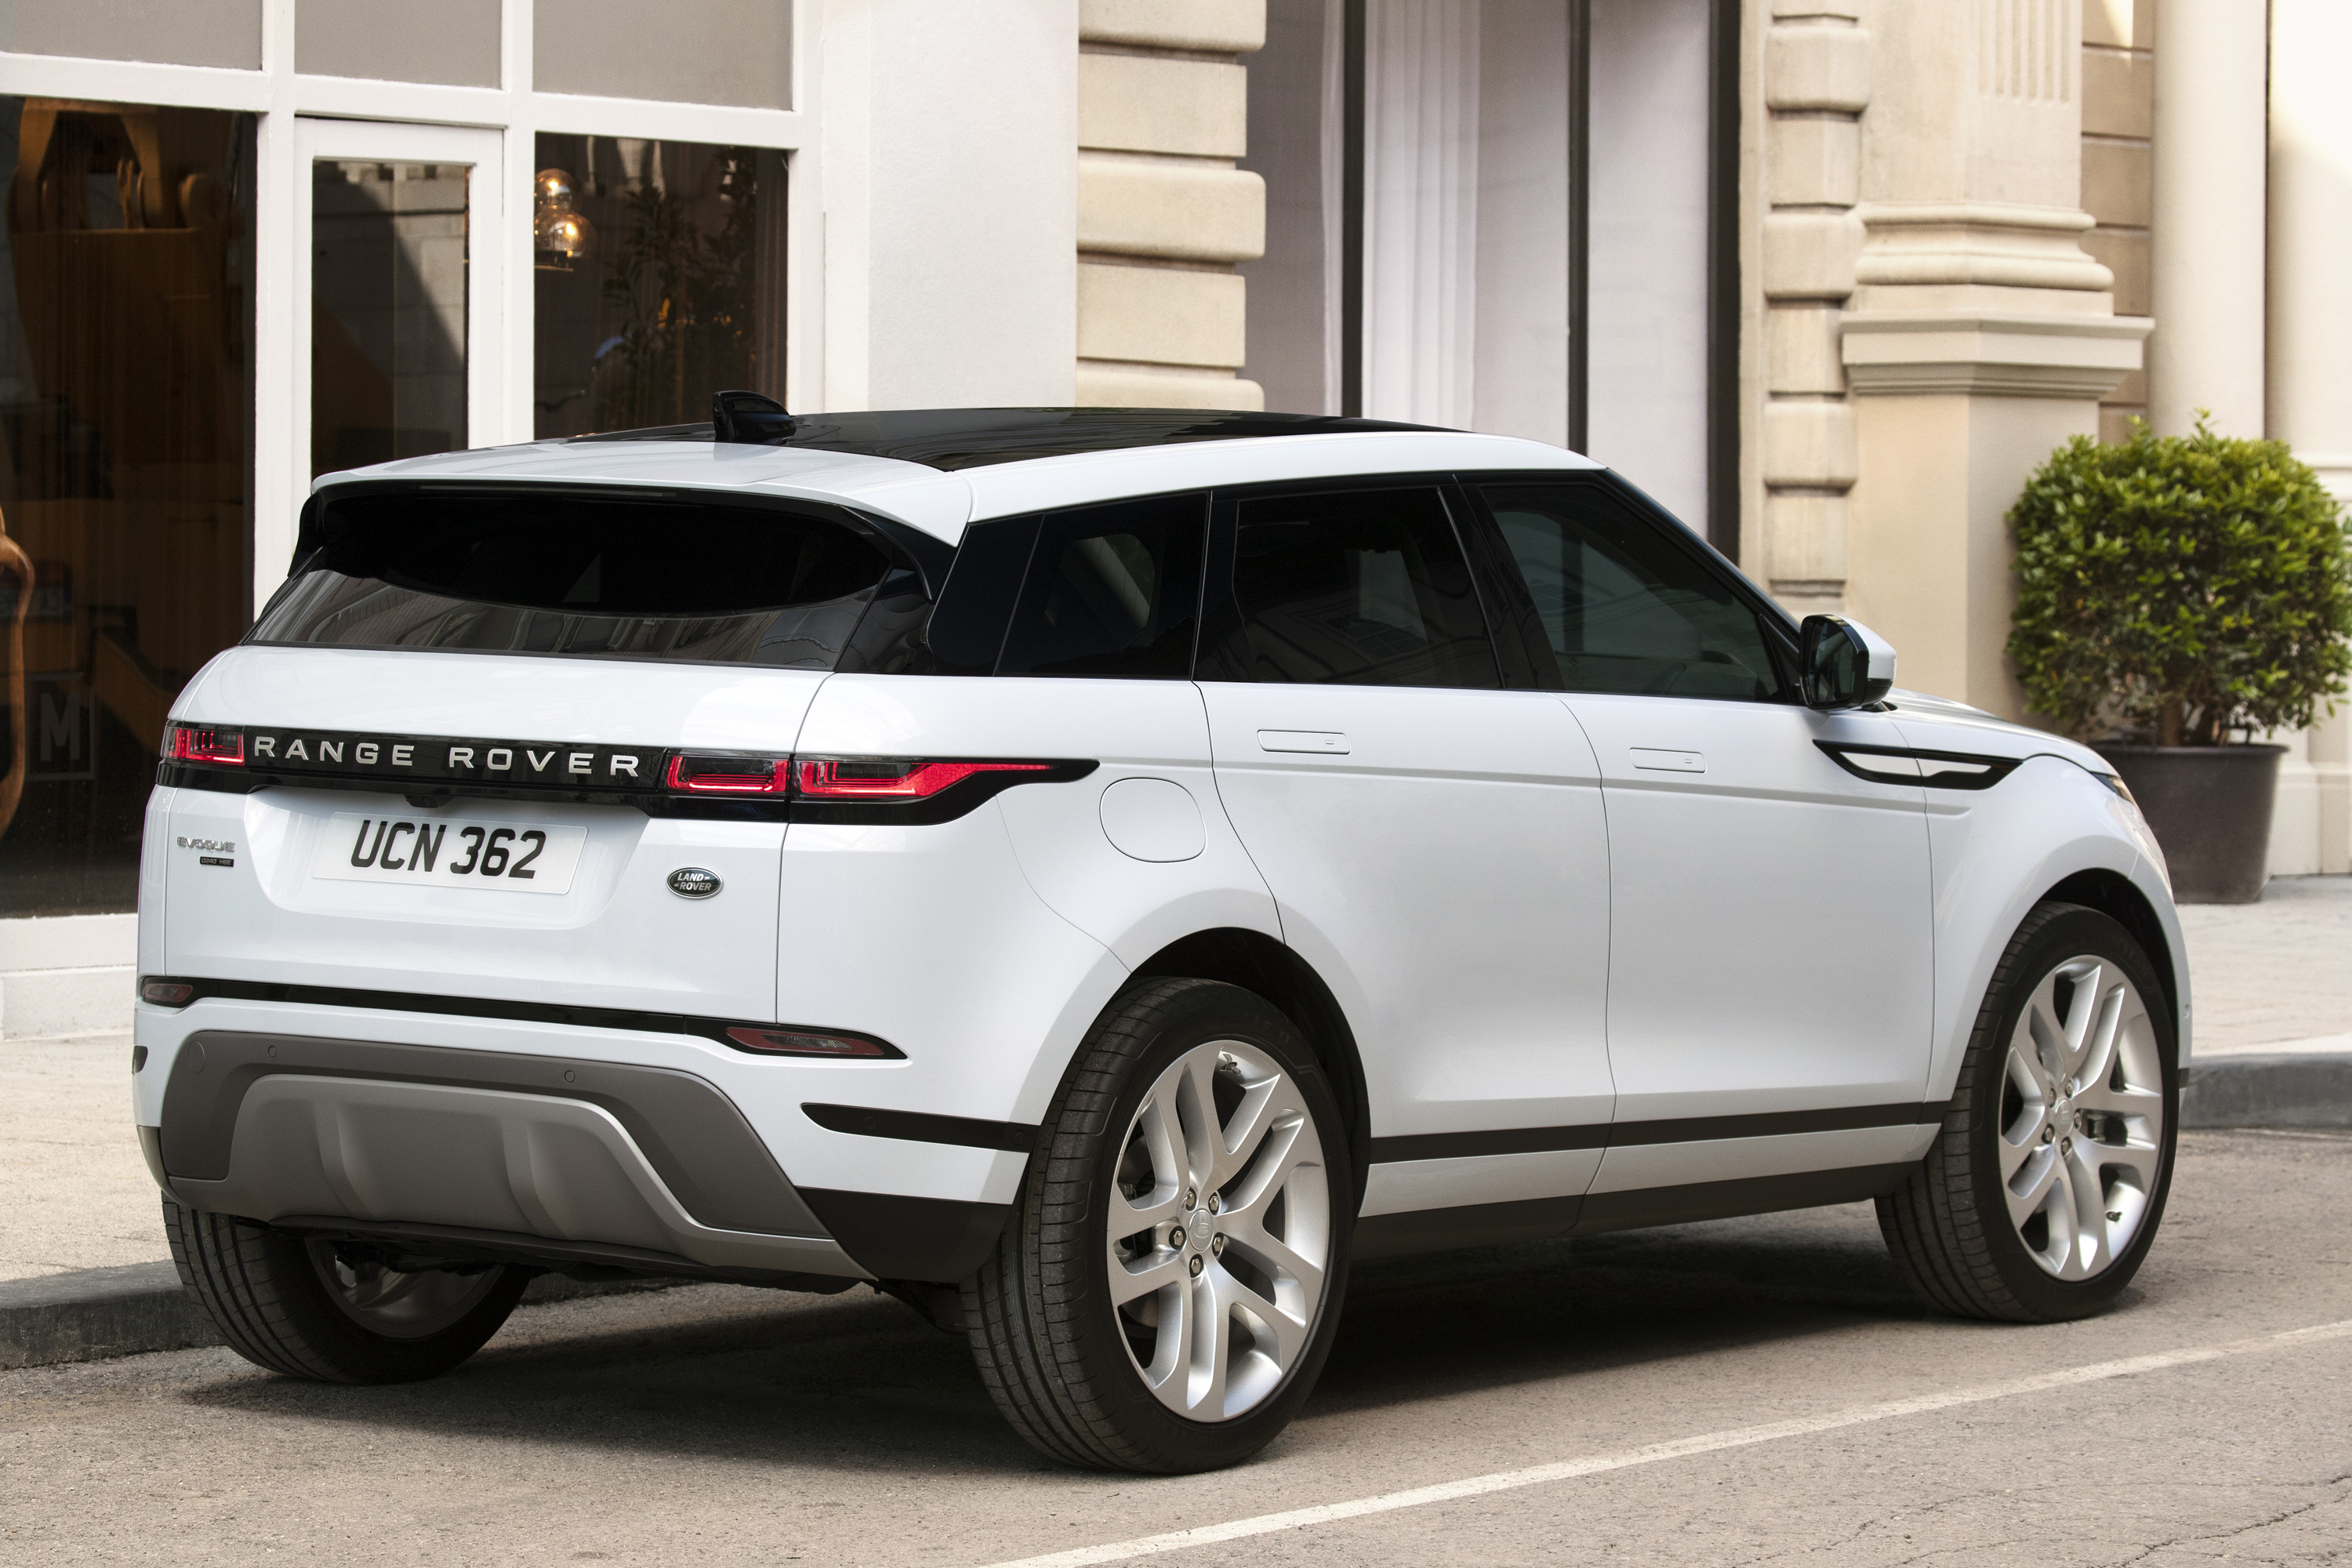 Landrover Range 2019 Land Rover Range Rover Evoque Vs 2019 Audi Q3 Top Speed